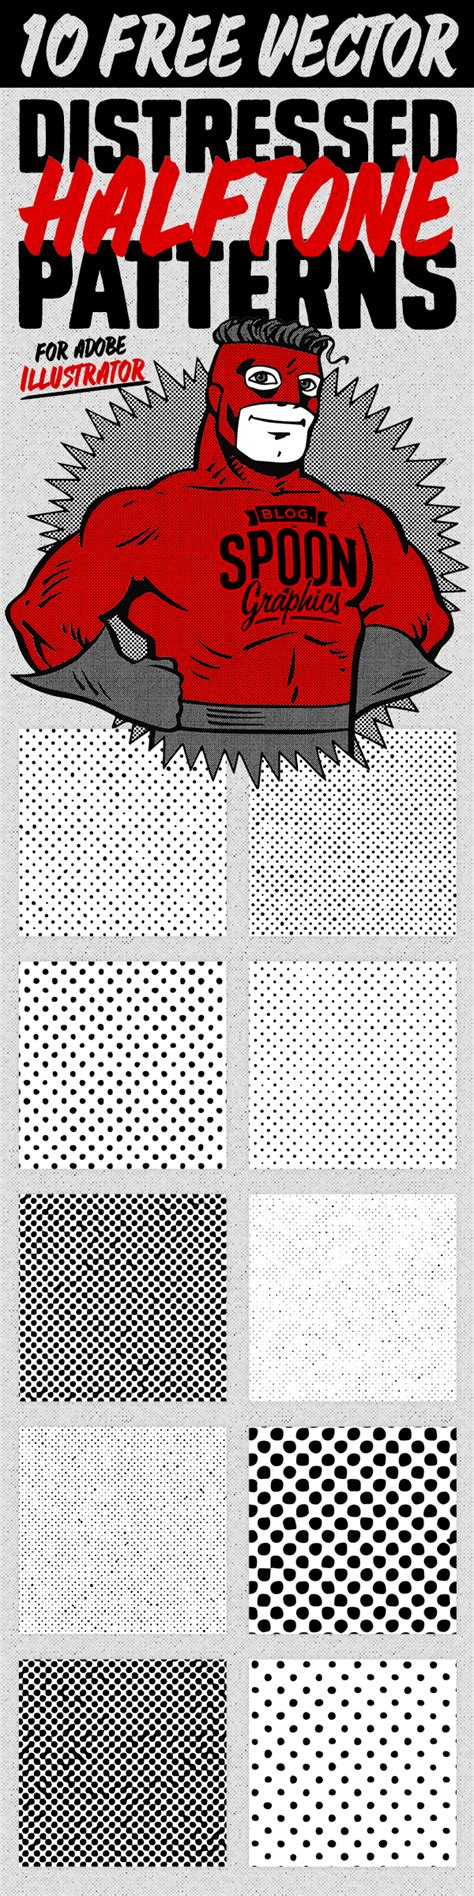 10 distressed vector halftone patterns for illustrator 10 distressed vector halftone patterns for illustrator